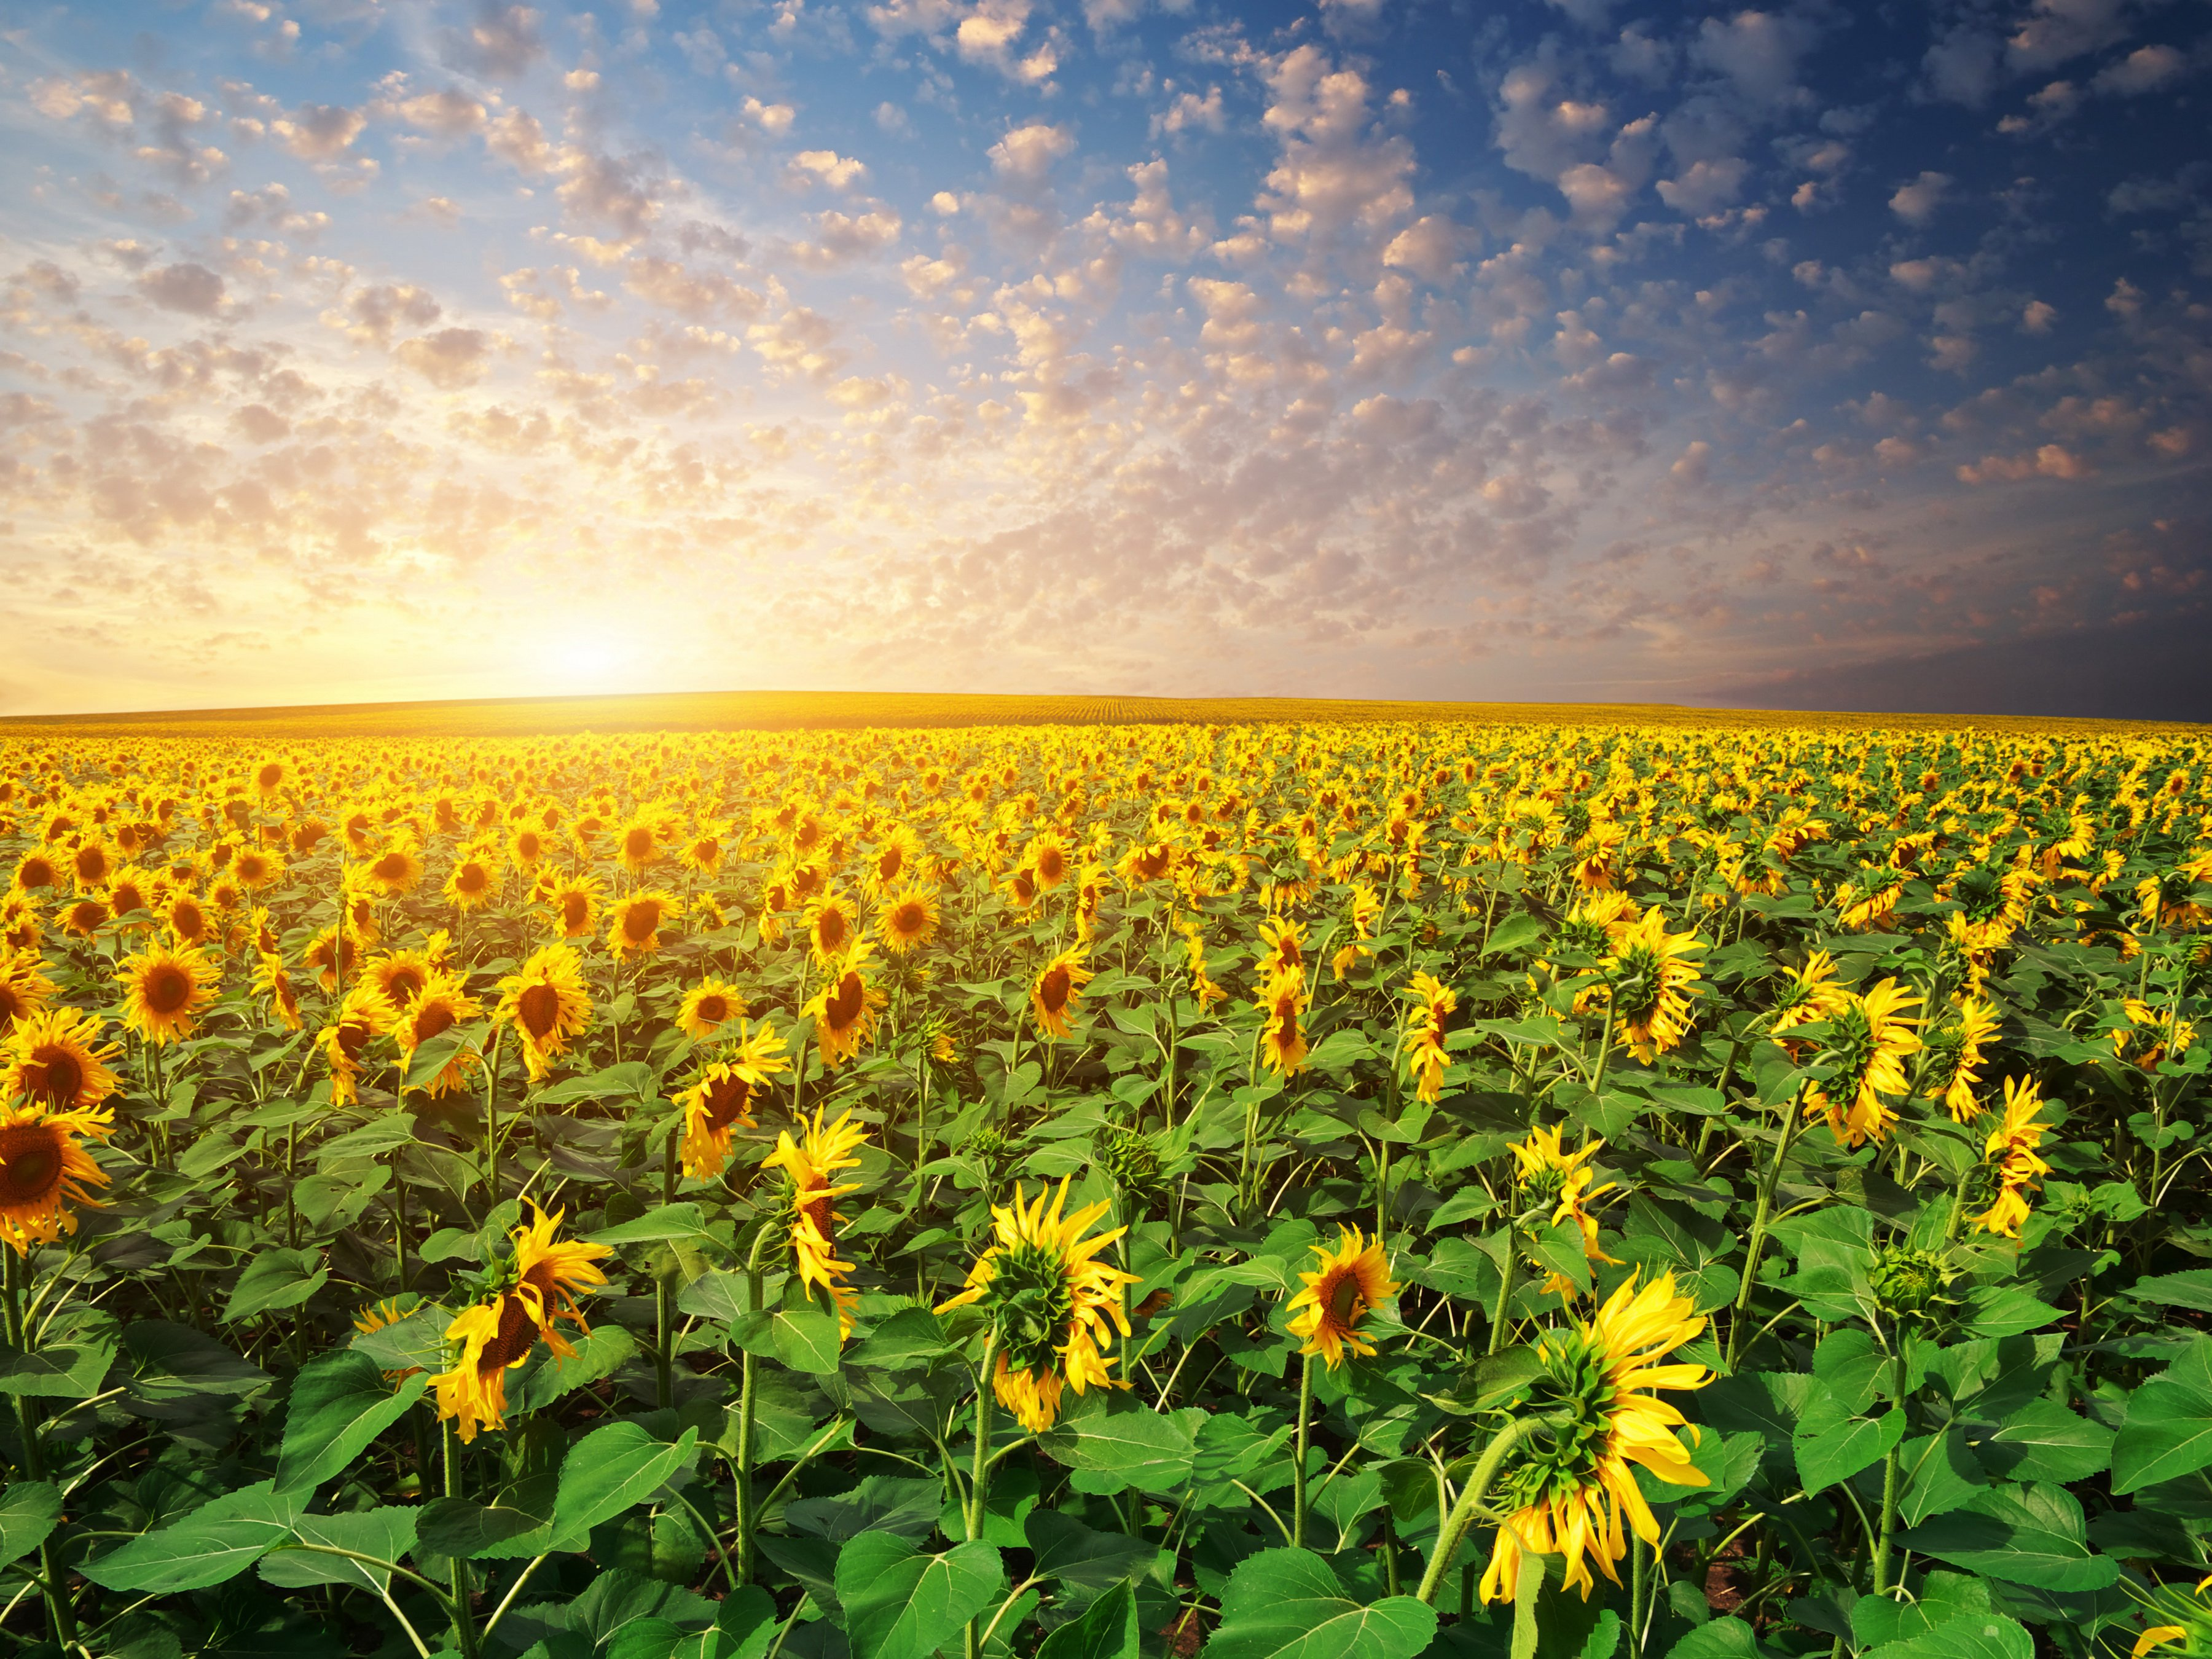 scenery fields sunflowers sunrises and sunsets sky nature